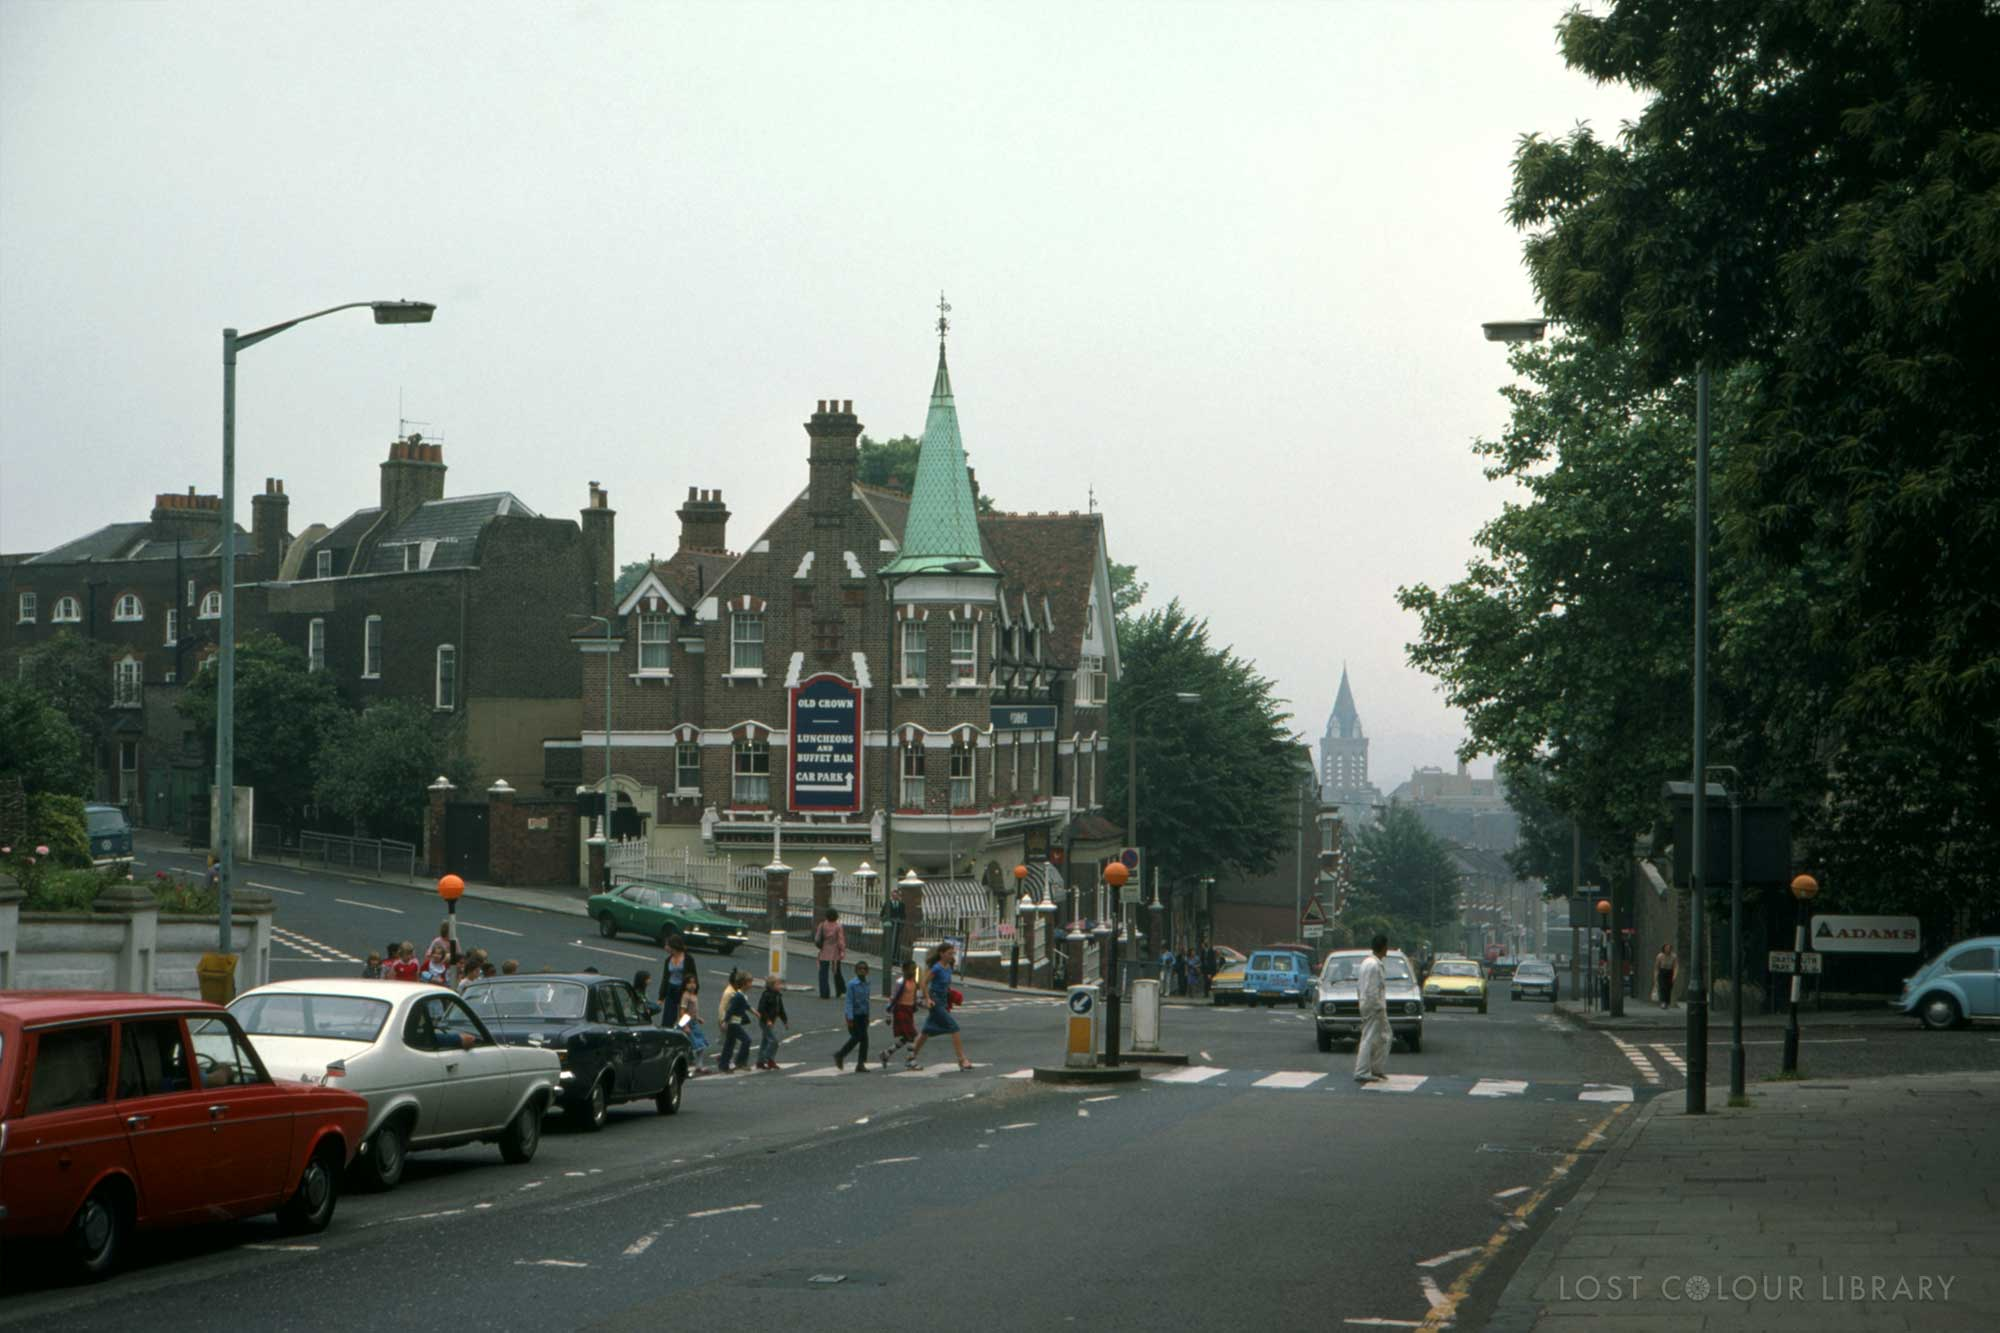 lcl-ww-highgate-hill-1978-site-wm.jpg